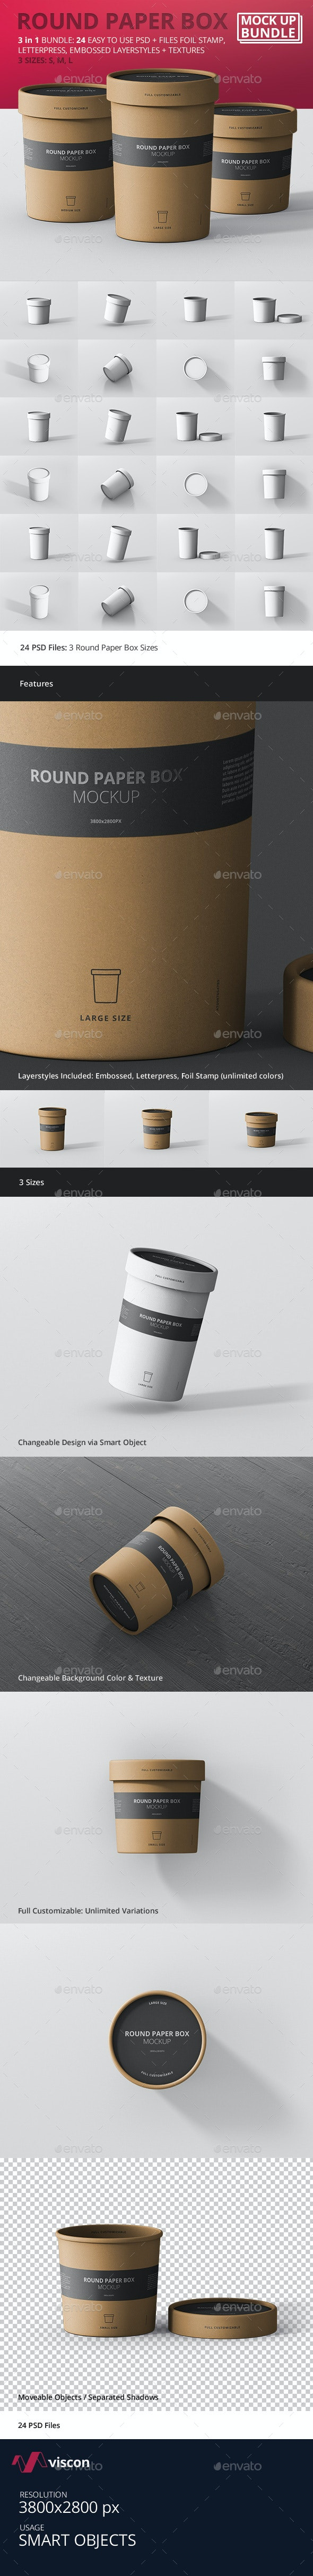 Round Paper Box Mockup Bundle - Food and Drink Packaging